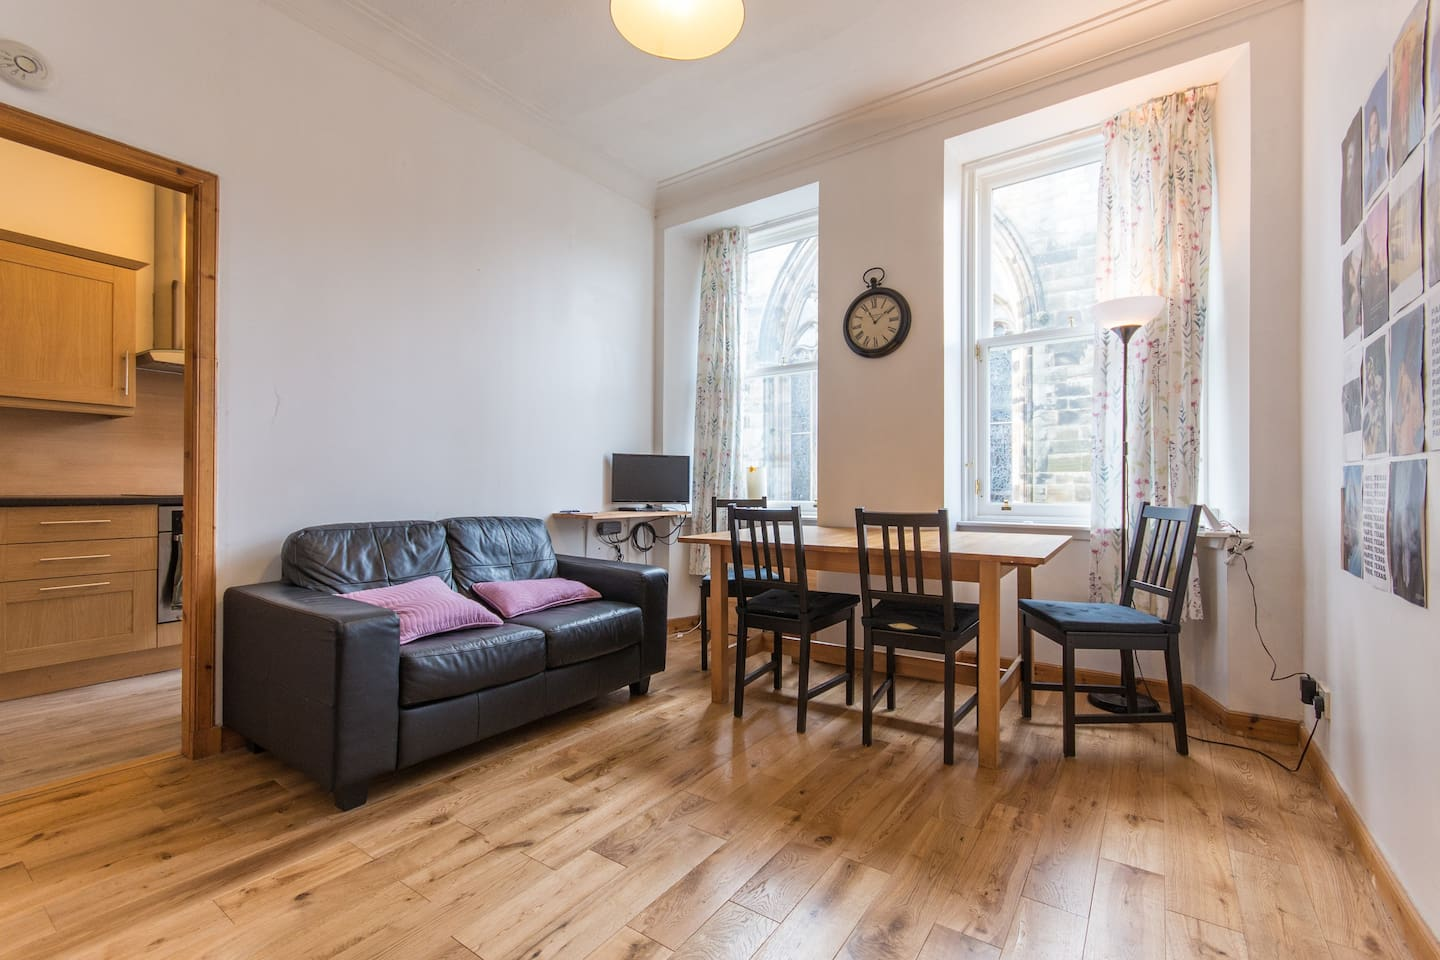 Sheila's flat is bright and spacious, set in the heart of historic St Andrews.